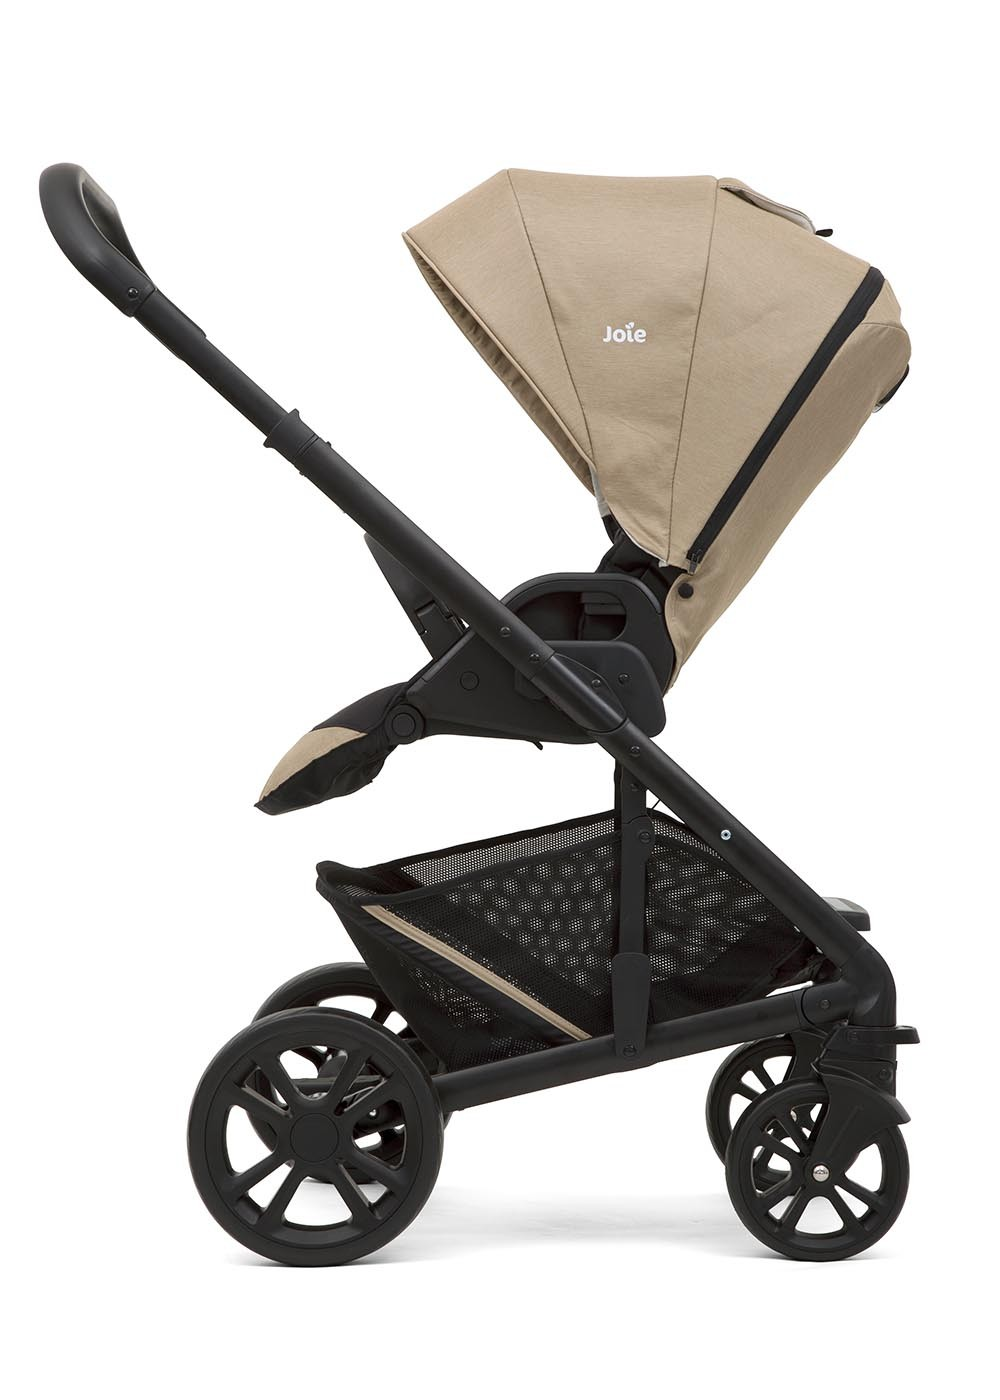 Travel System Joie Chrome Joie Chrome Baby Stroller With Reversible Seat Newborn Till